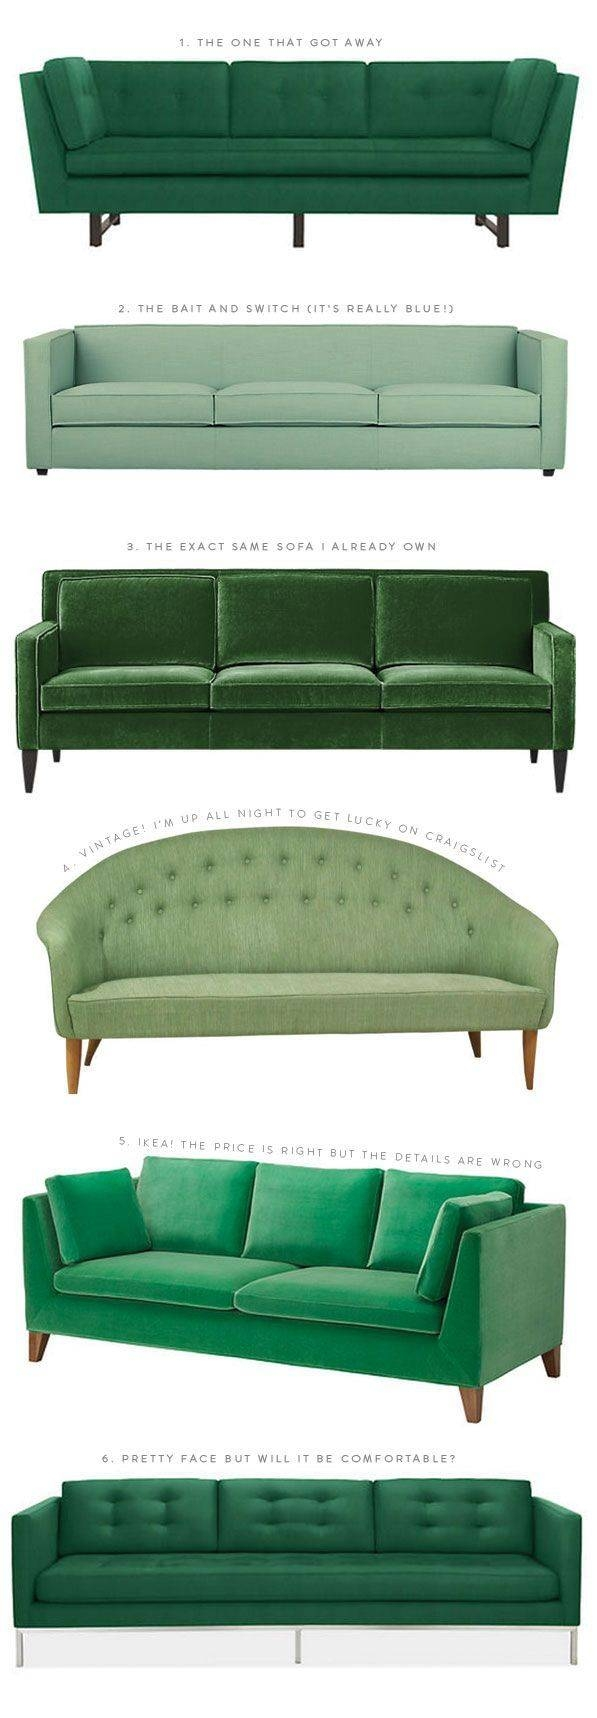 307 Best Sofas & Chairs - Ahhhhh! Images On Pinterest | Sofas inside Chintz Covered Sofas (Image 4 of 30)